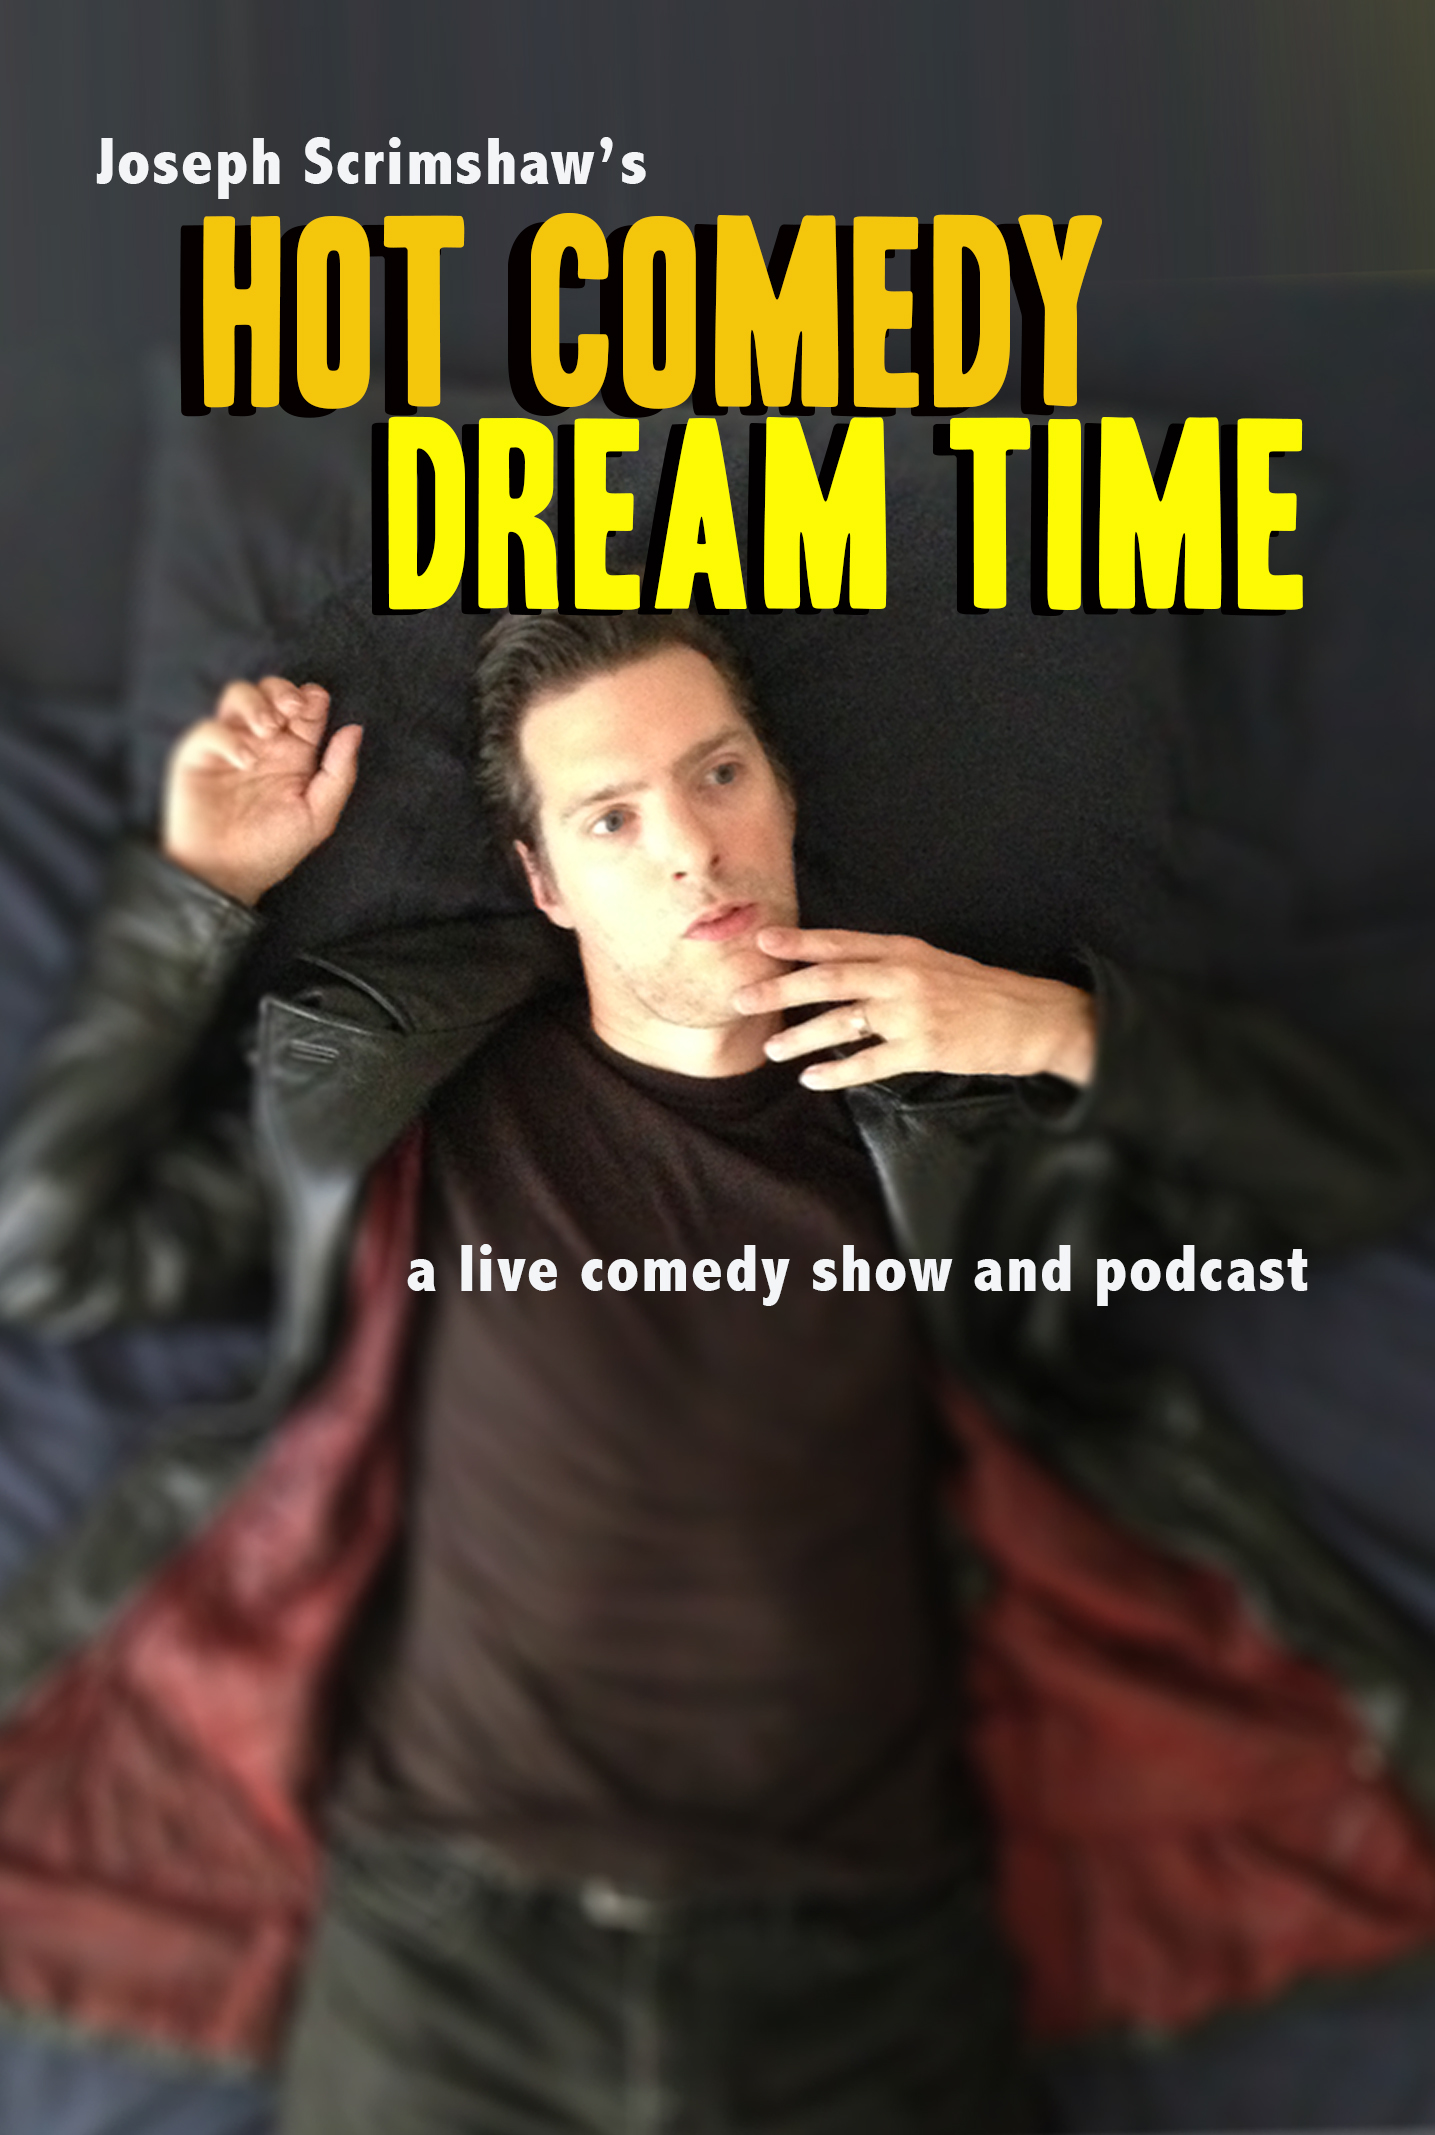 Hot Comedy Dream Time